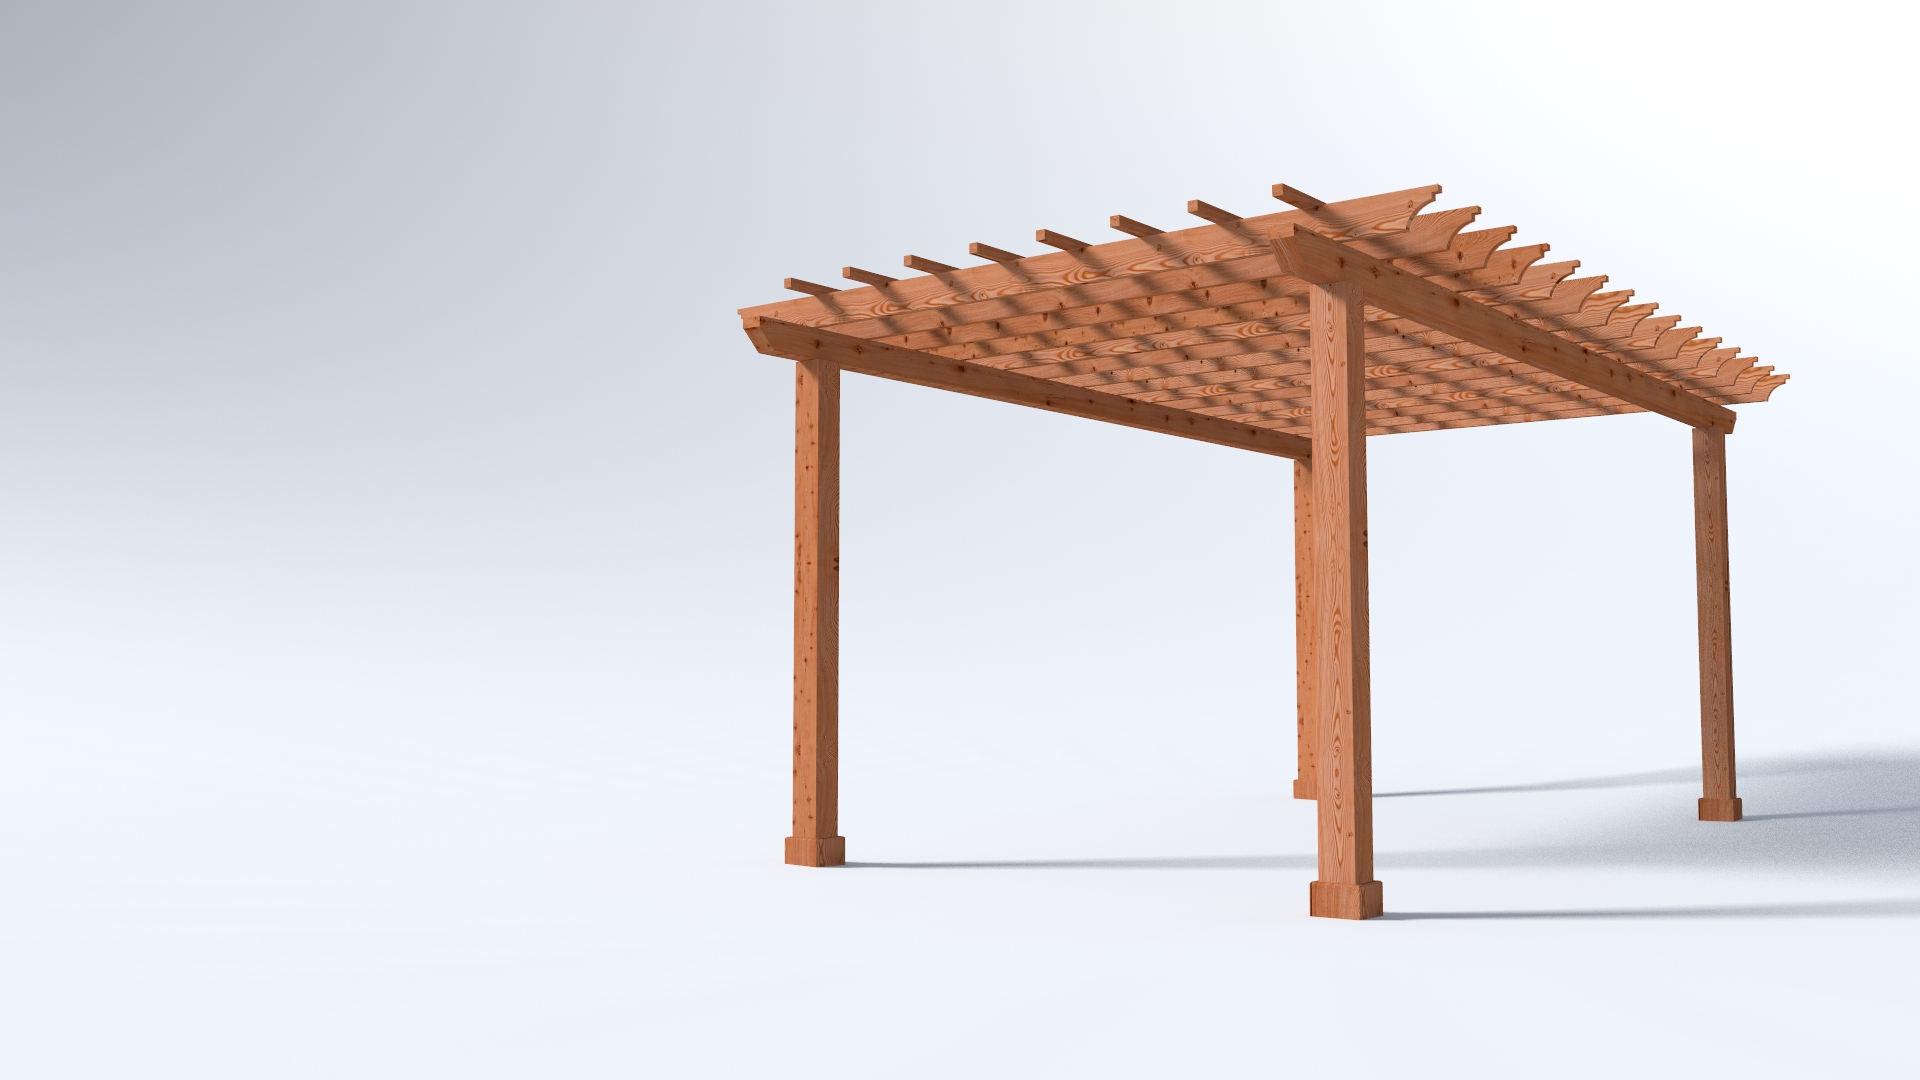 12x20 Garden Pergola - 4x Beams